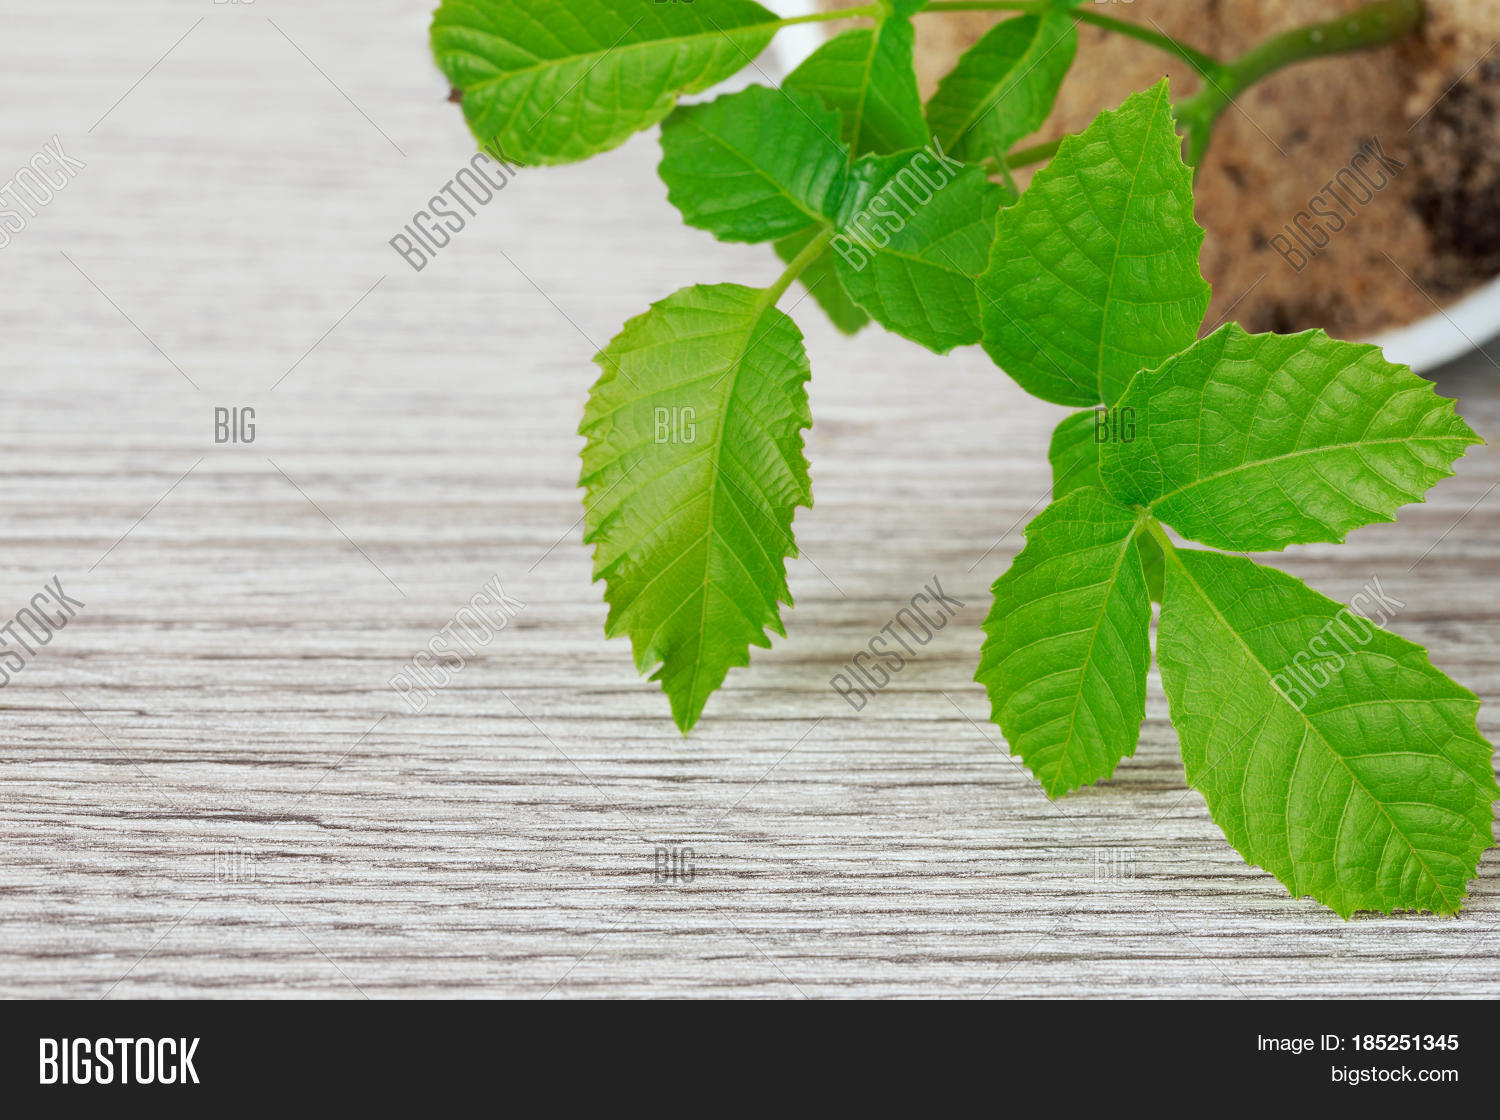 Sprout,agriculture,background,beginnings,botany,closeup,cracked,cultivation,gardening,germination,green,grow,growing,growth,healthy,little,nature,nut,nuttree,peel,plant,roots,sapling,seedling,shell,single,skin,small,stem,tree,walnut,walnuttree,wooden,young